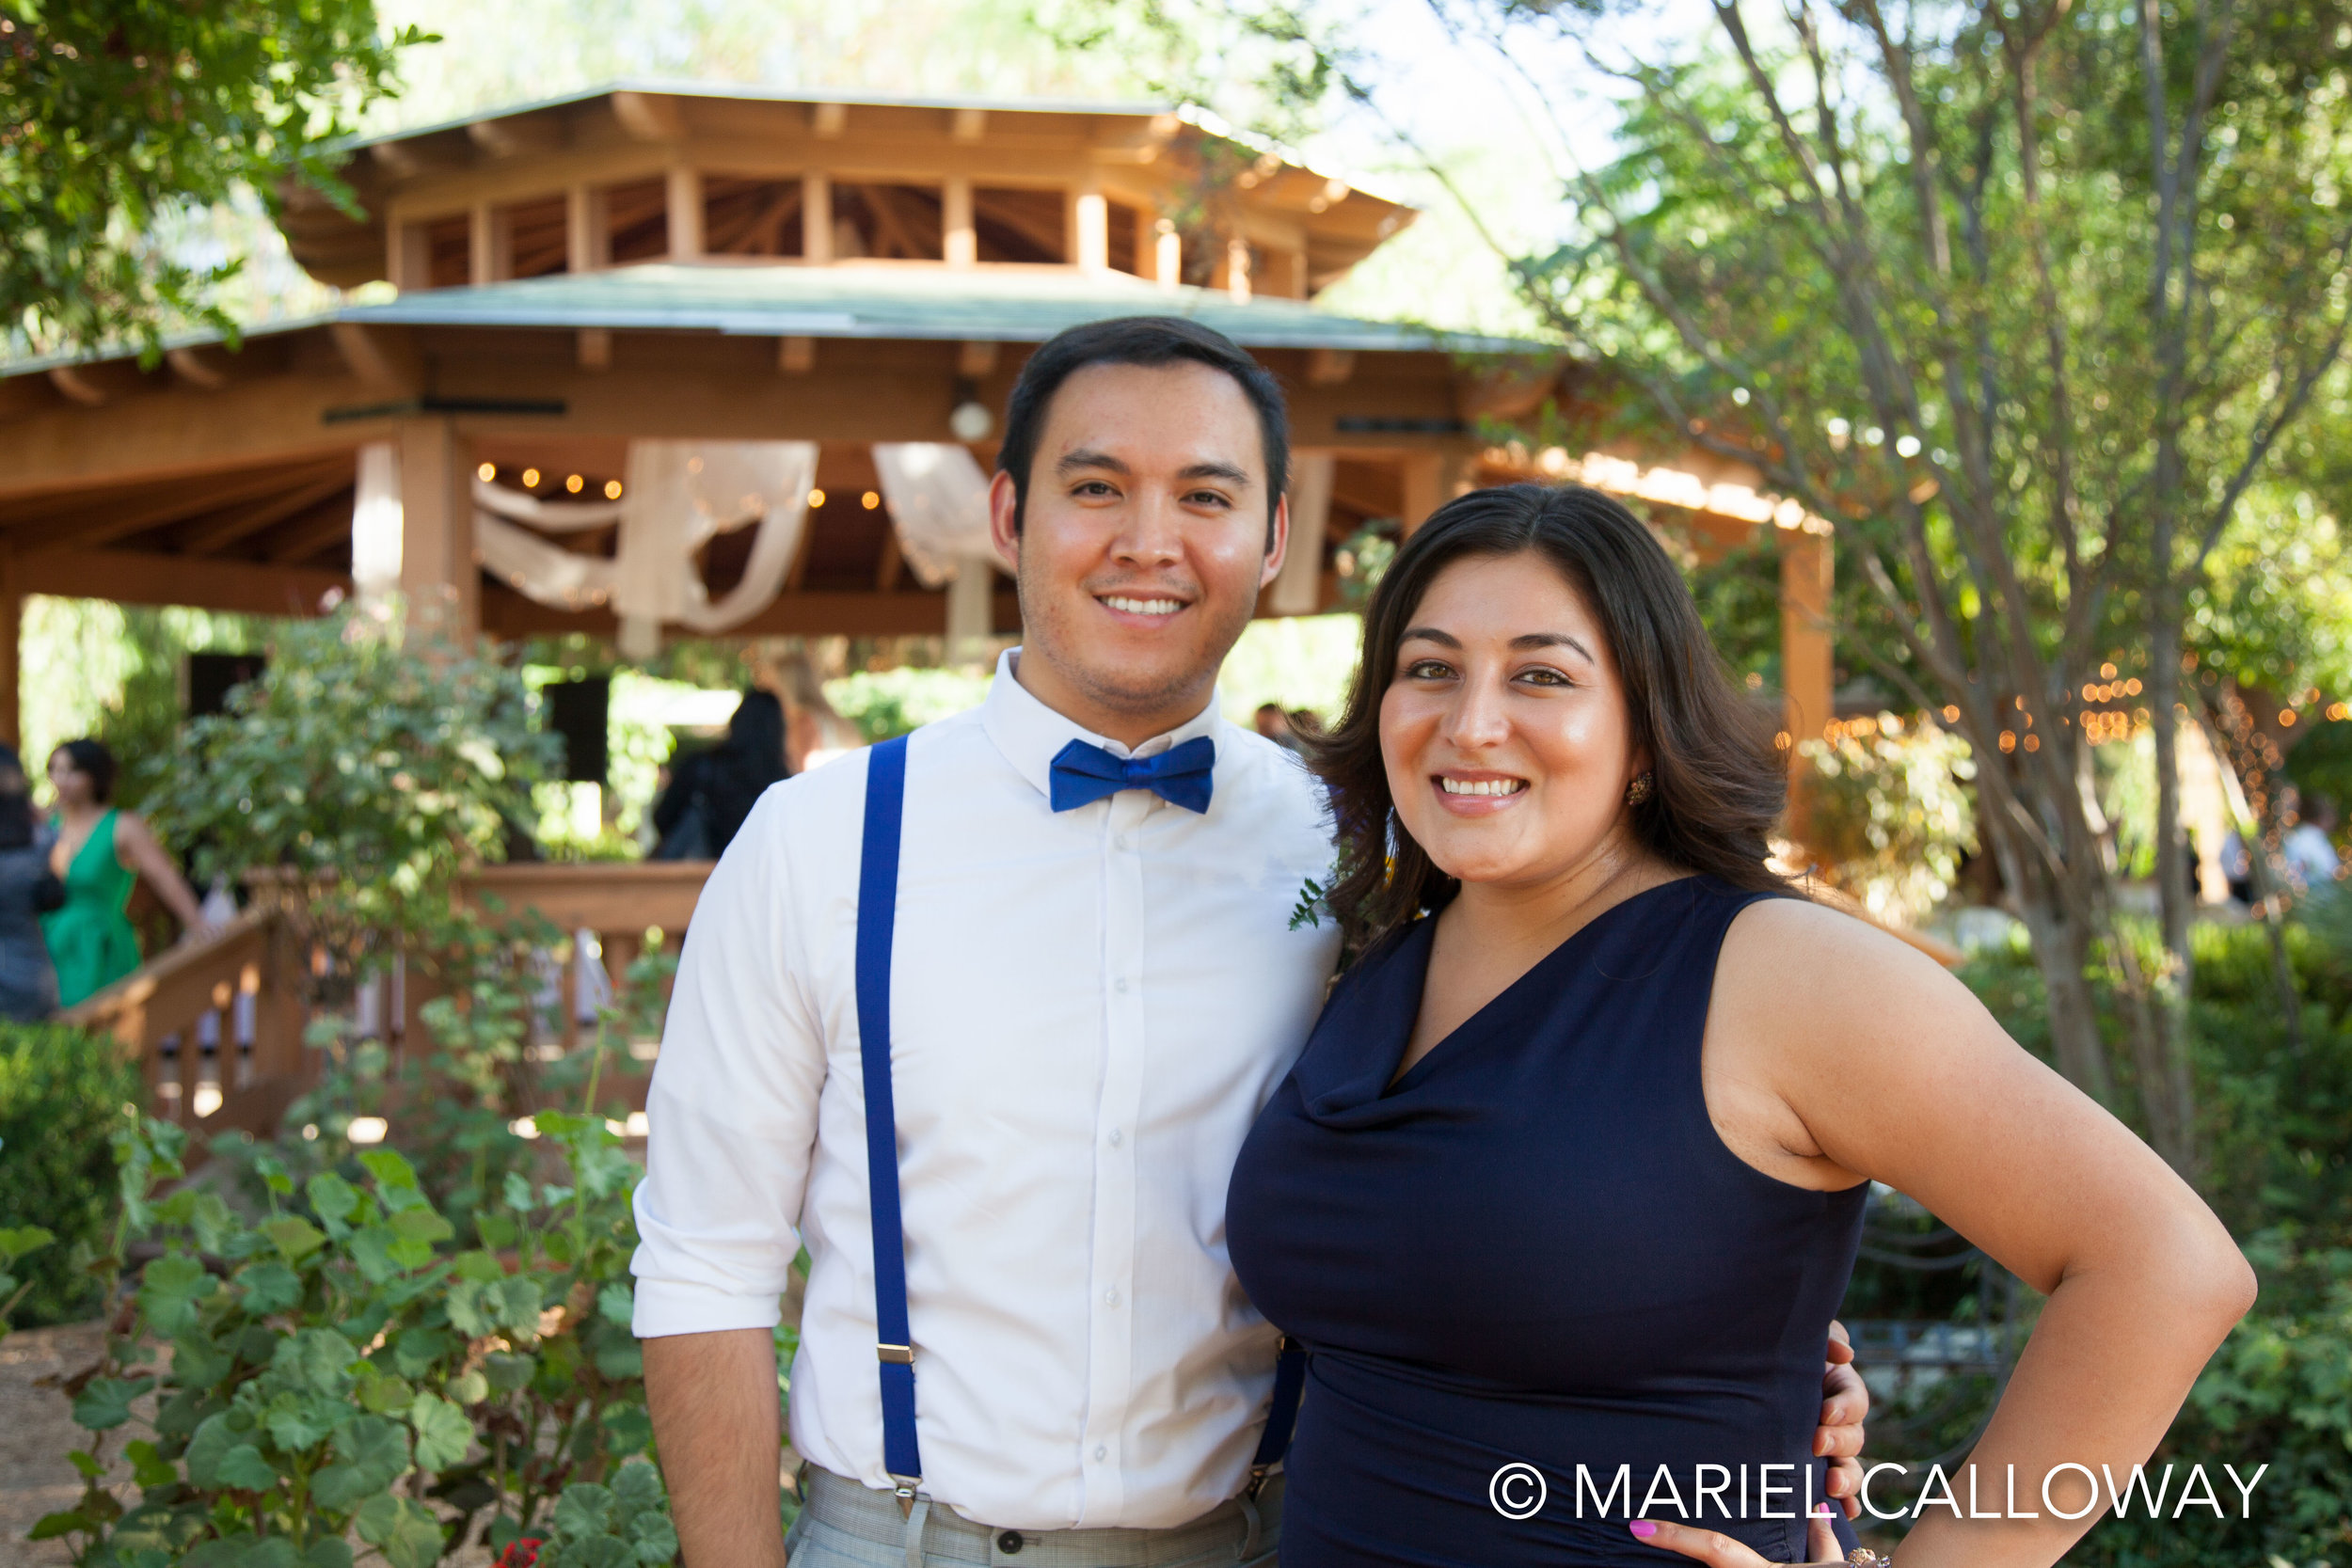 Mariel-Calloway-Wedding-Photographer-Los-Angeles-NatRory-18.jpg